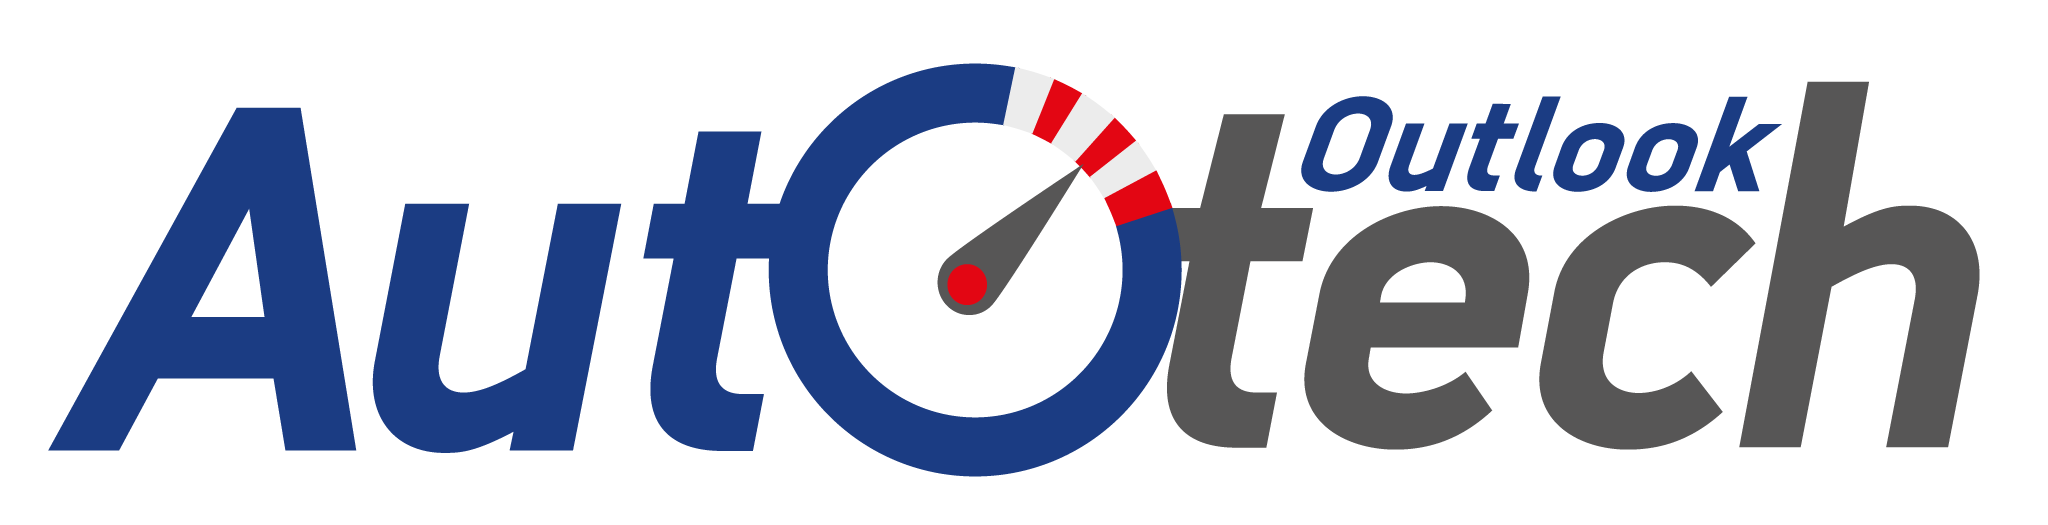 Auto Tech Outlook - Logo